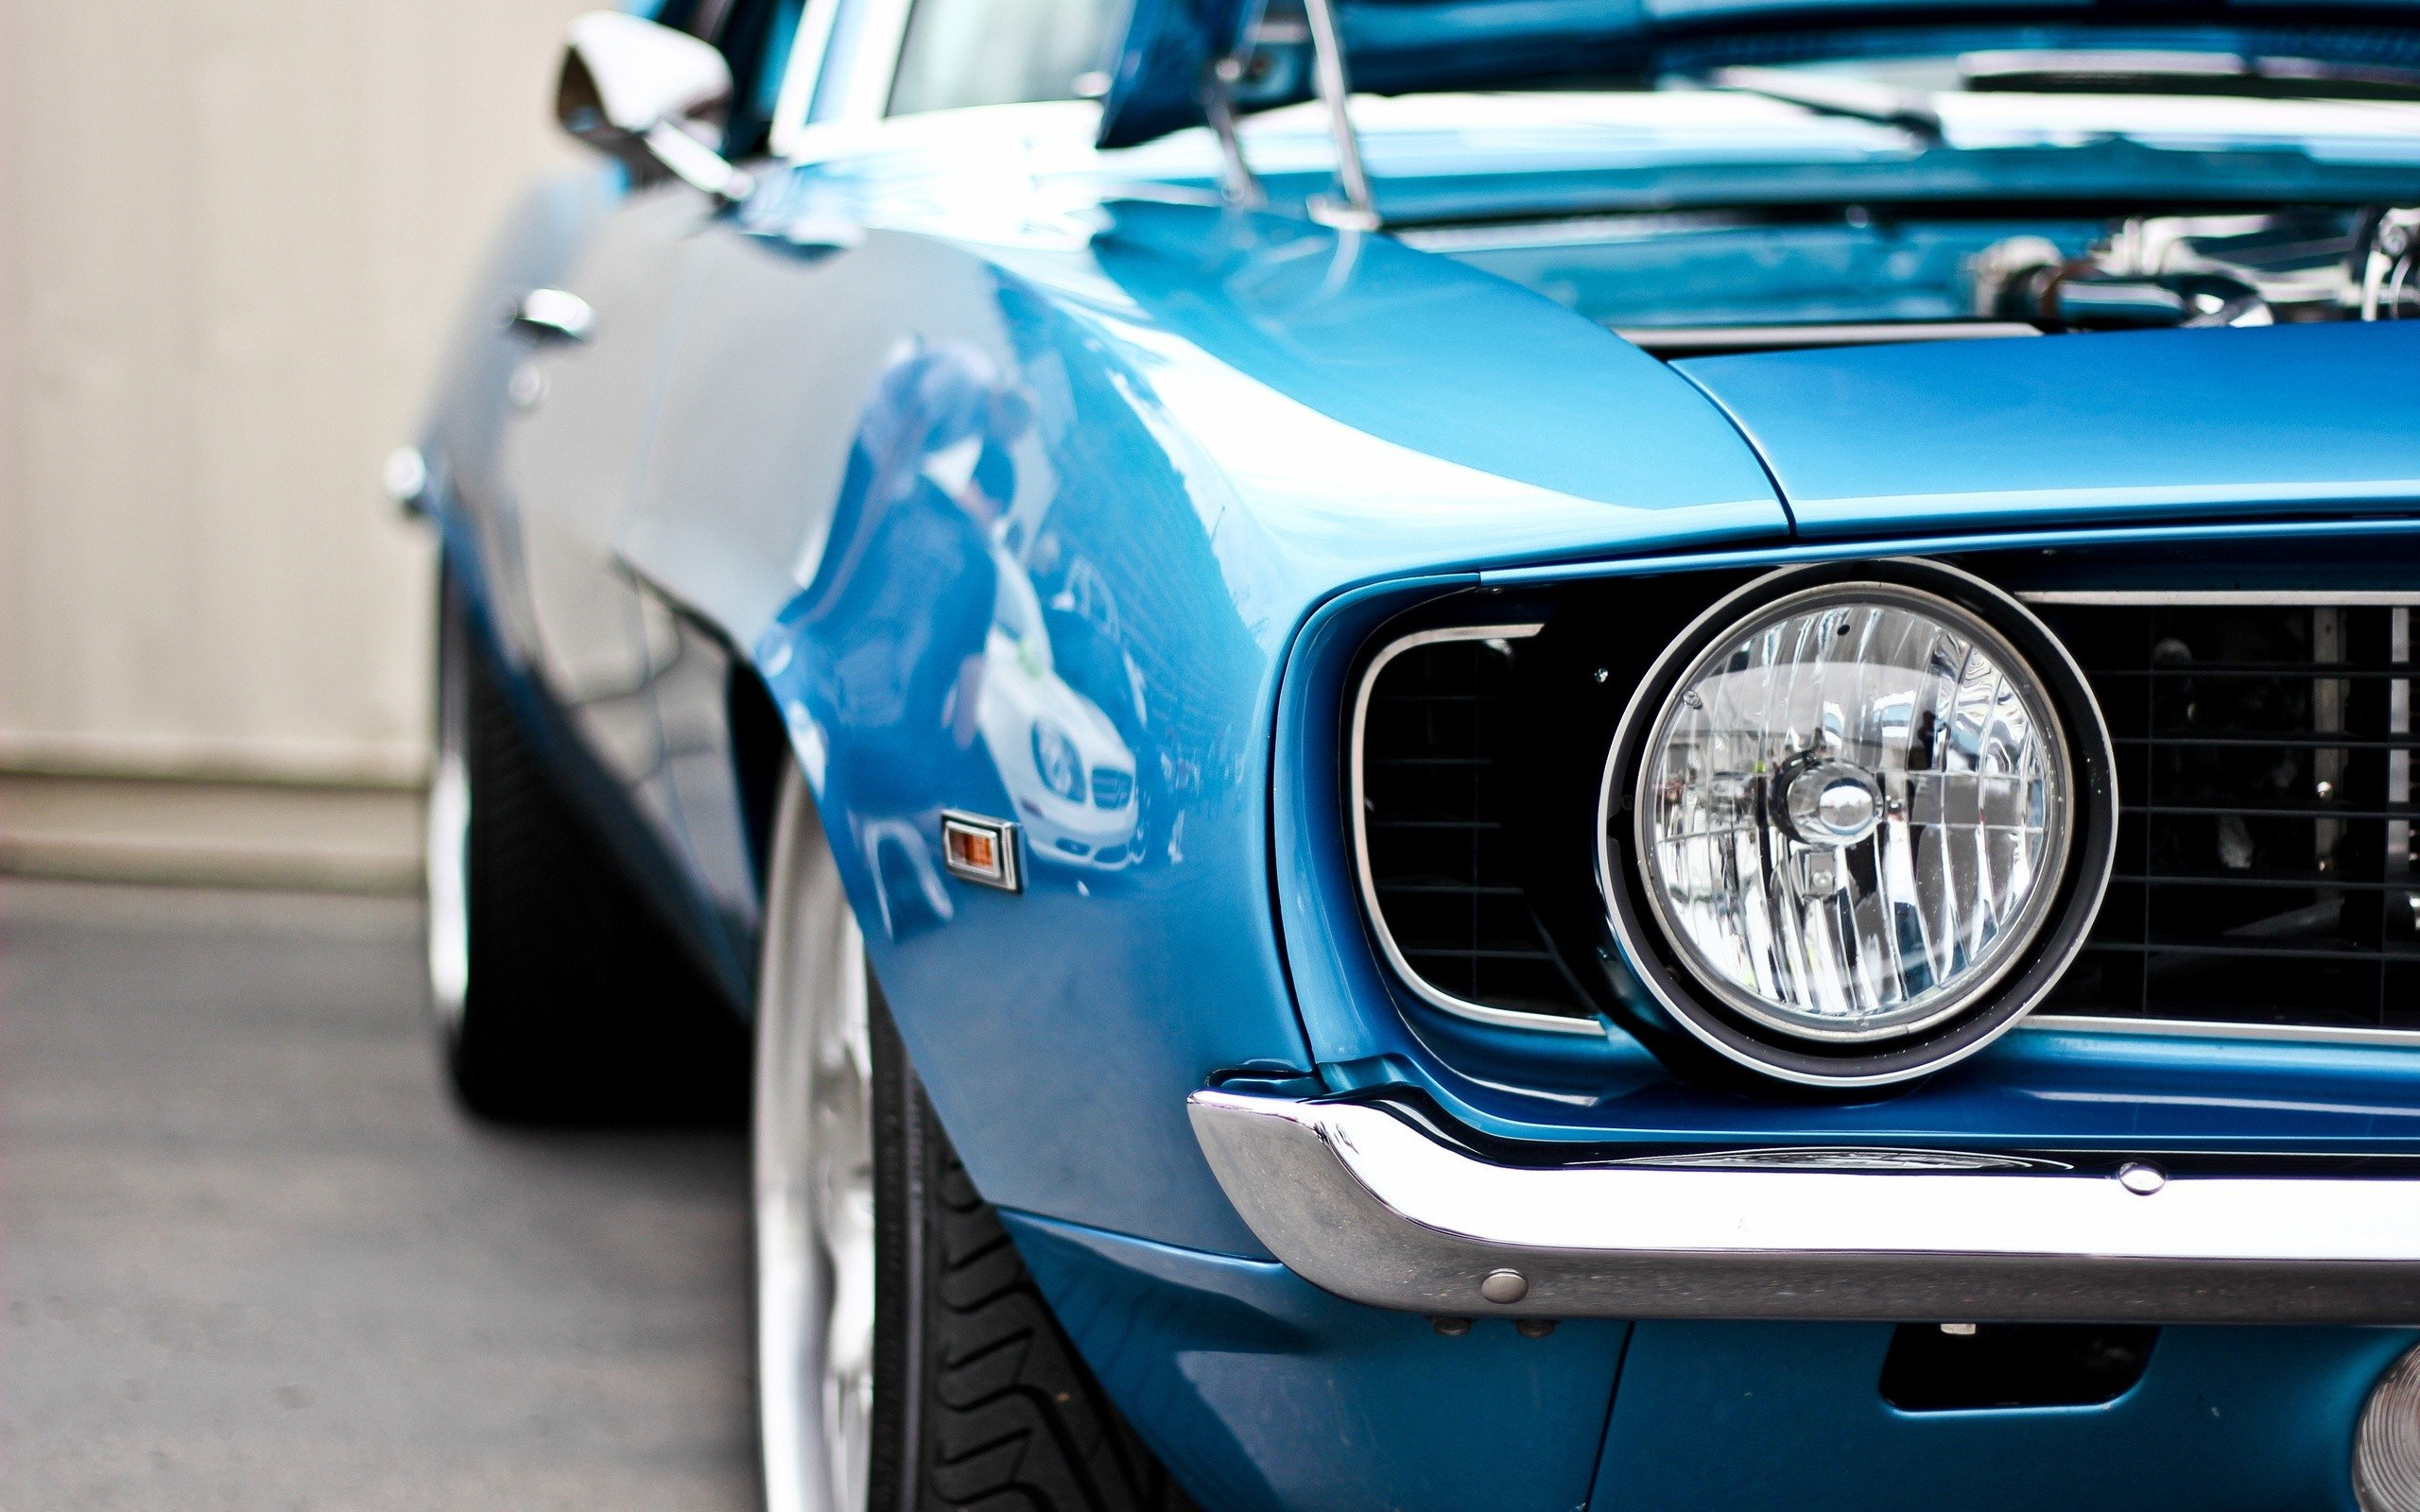 Ford Mustang Muscle Car Wallpaper HD Car Wallpapers 2560x1600